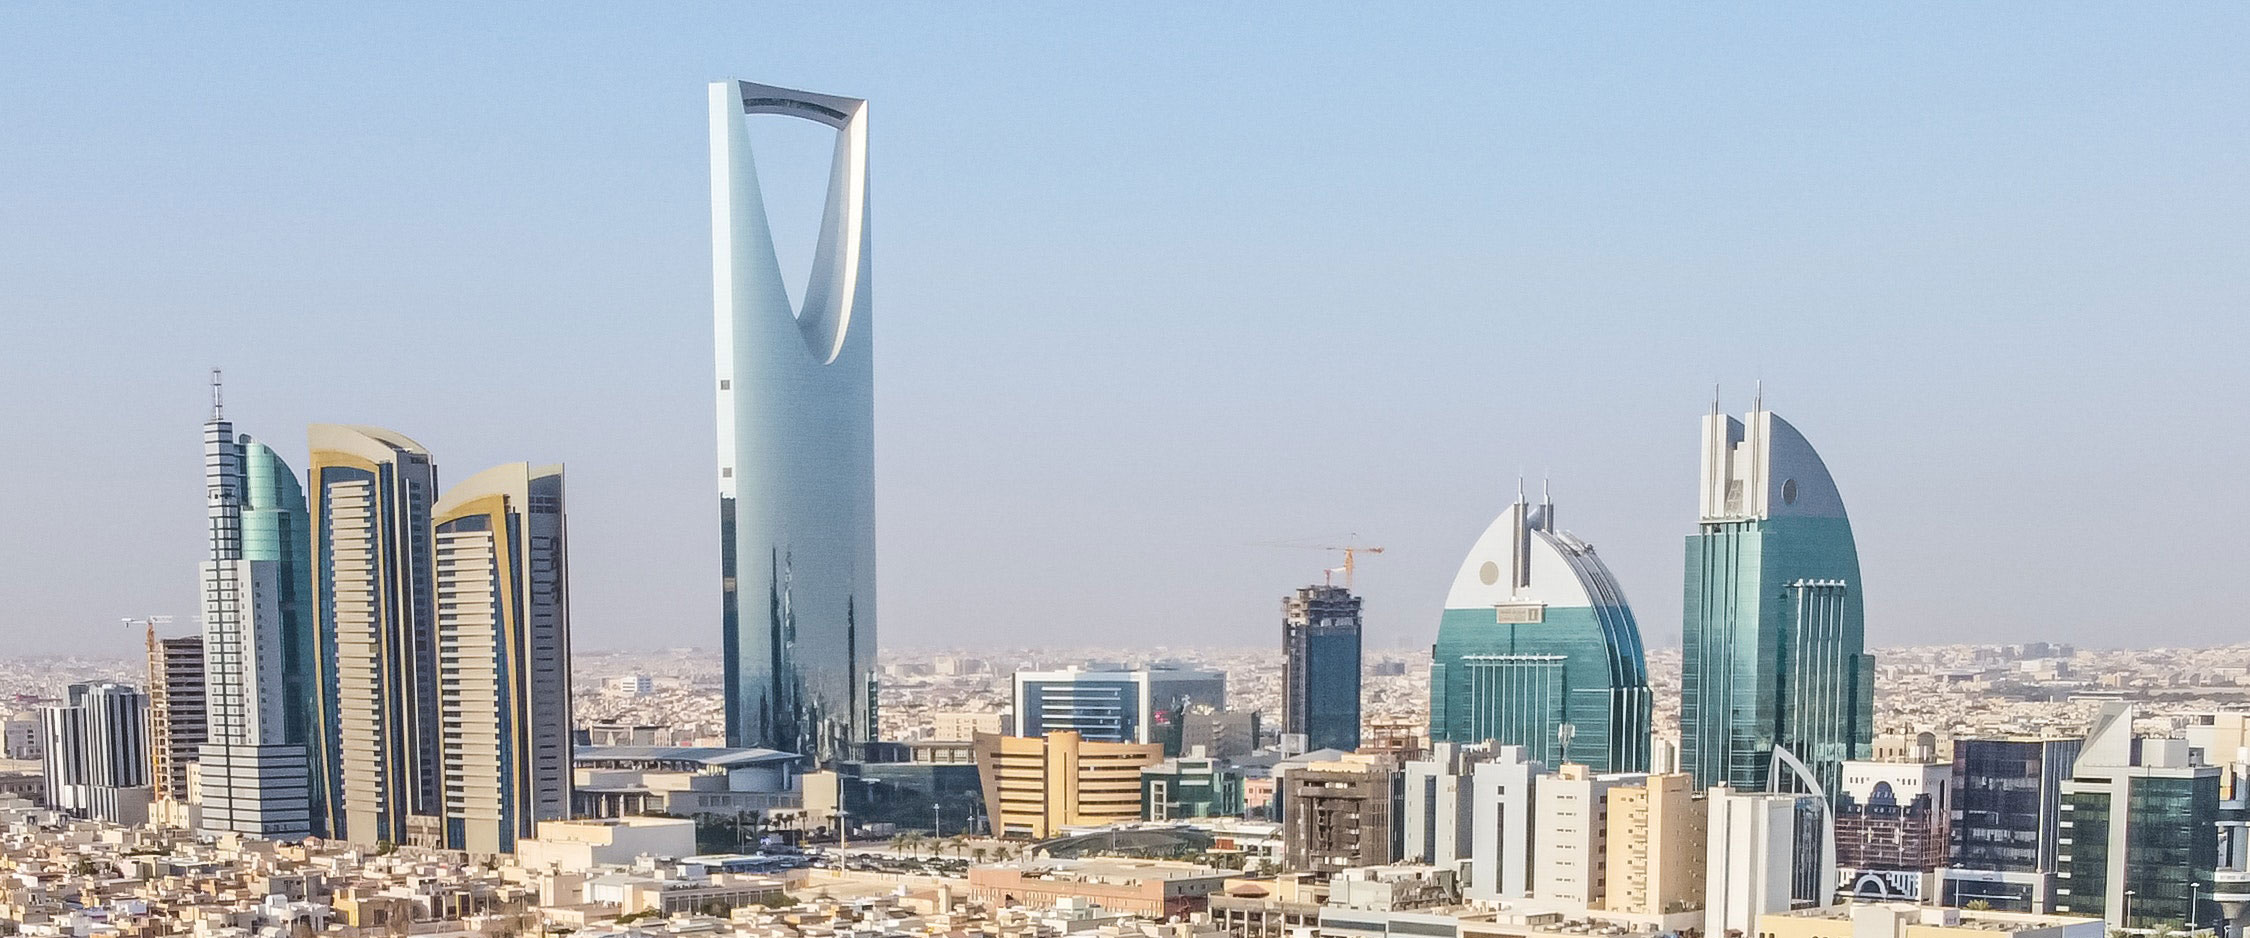 The implementation of e-invoicing in Saudi Arabia is now effective